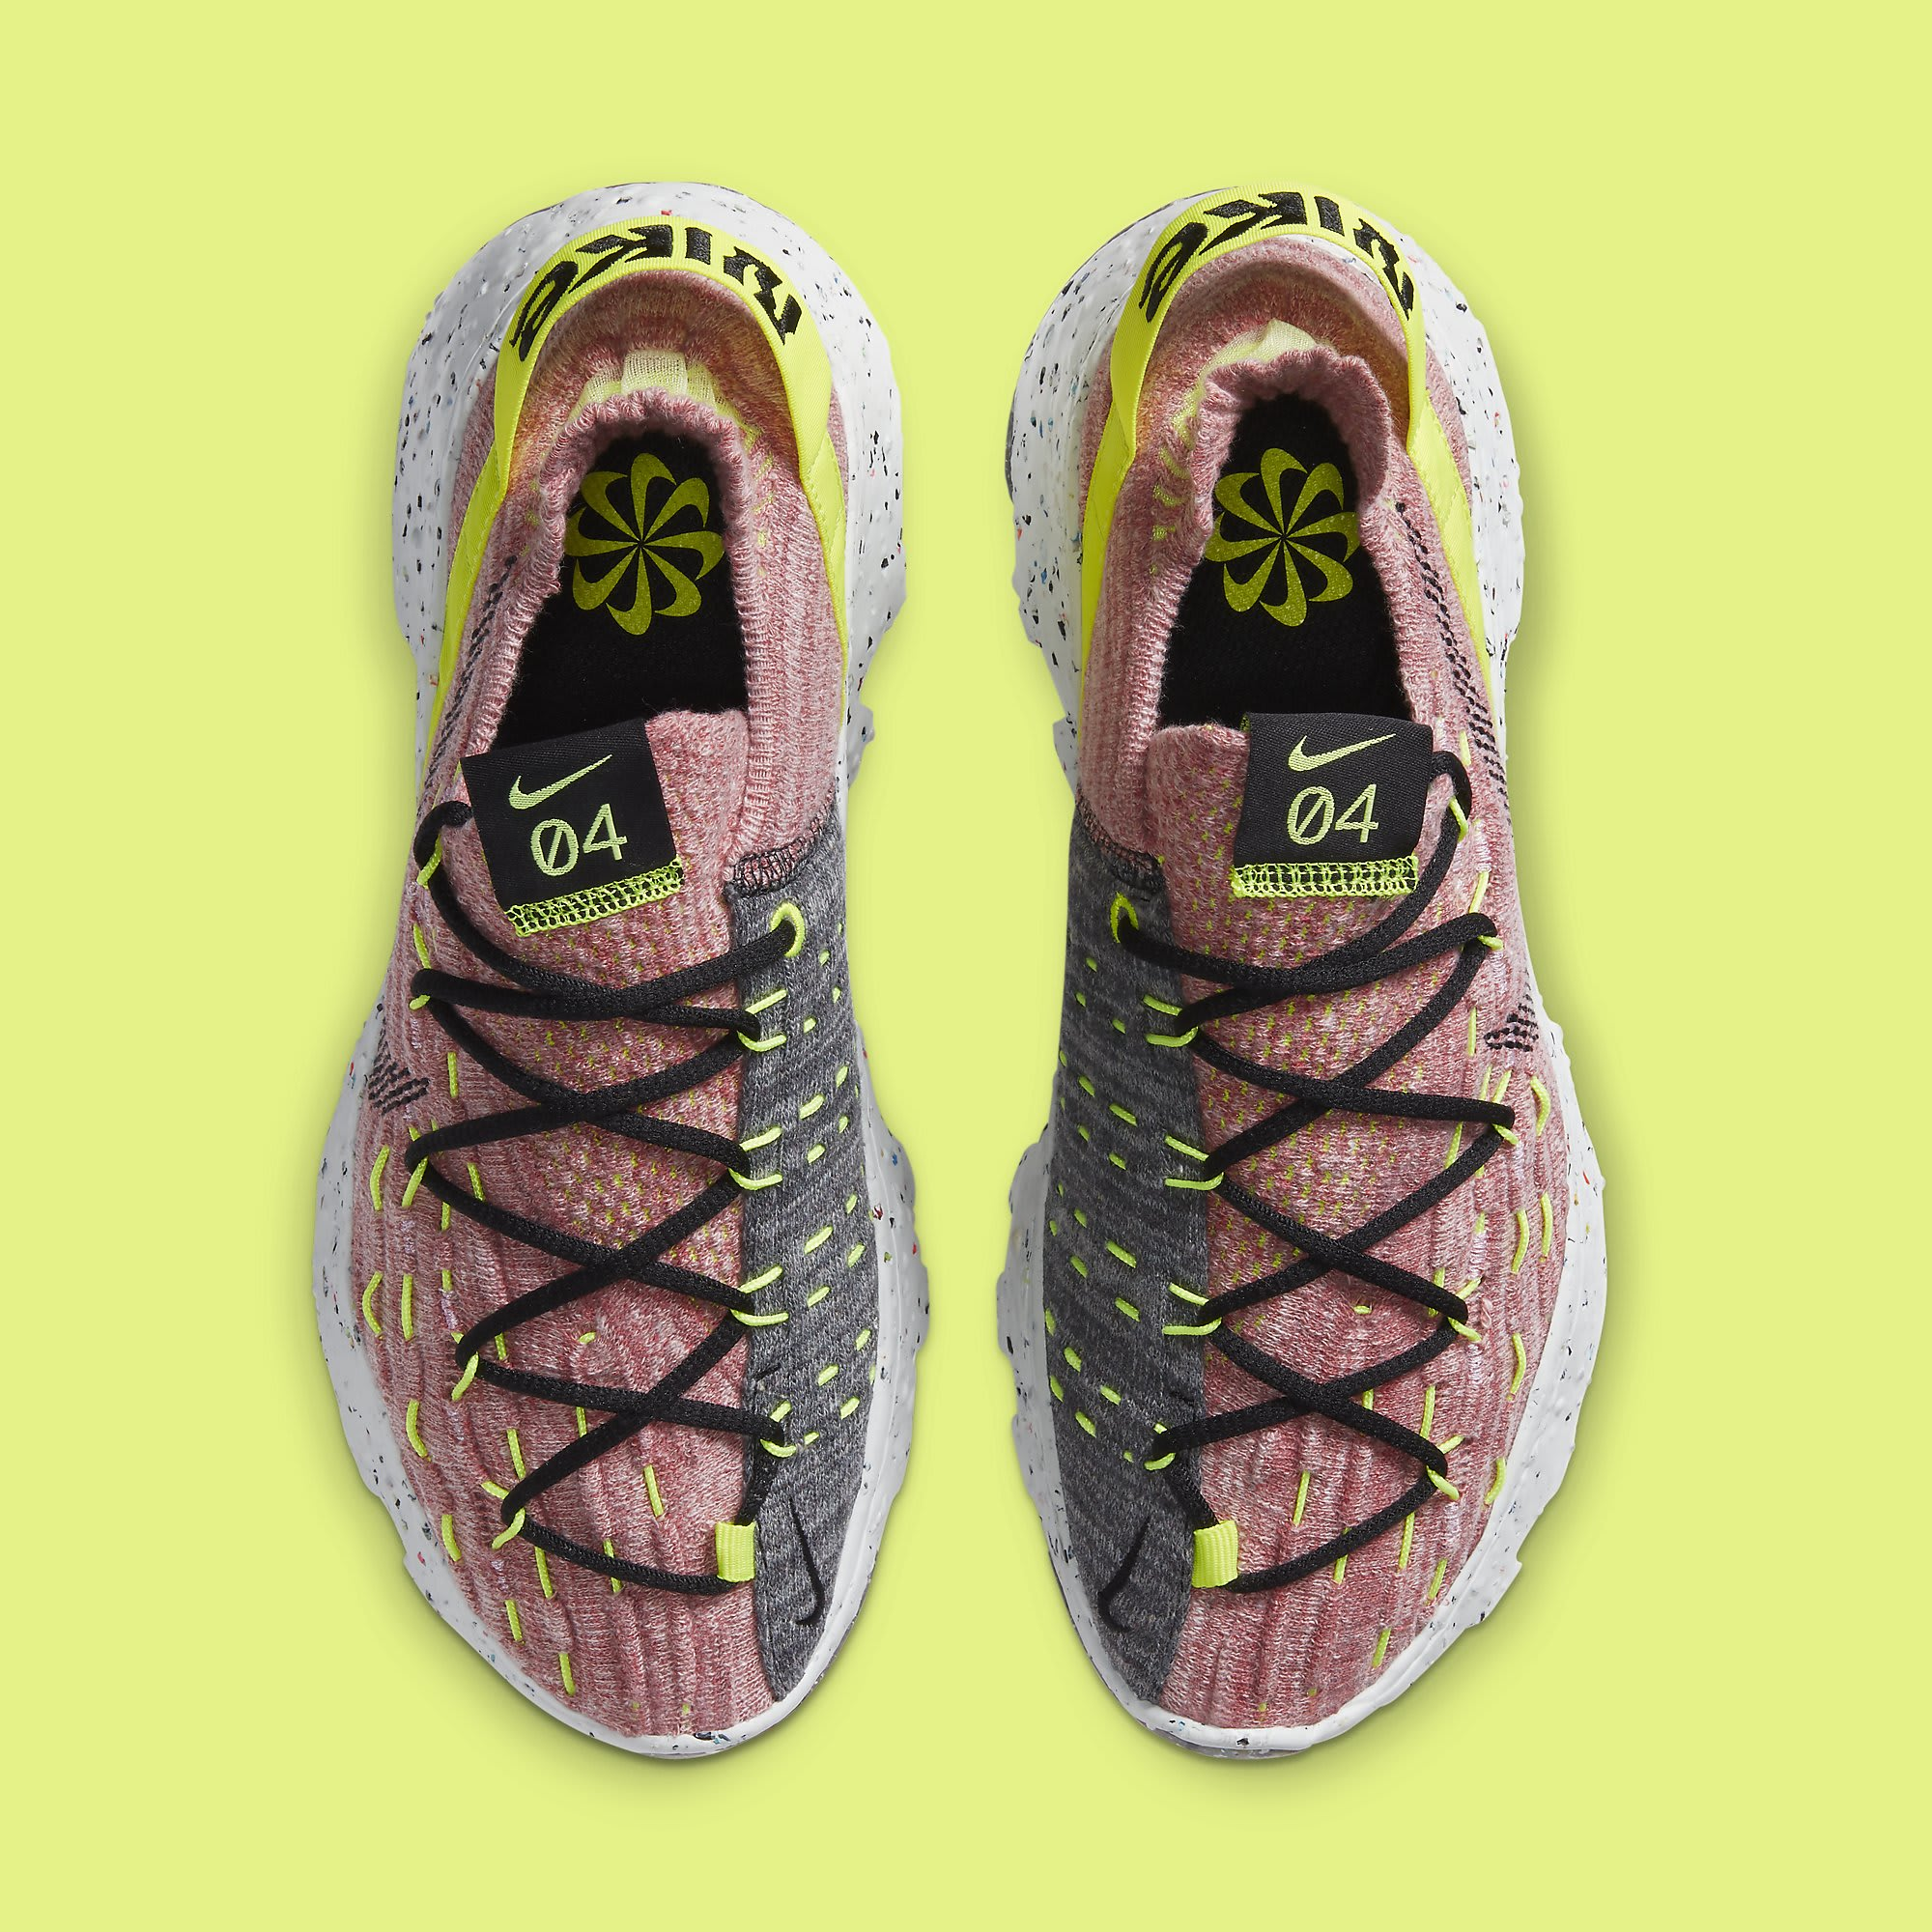 Nike Space Hippie 04 Women's 'Lemon Venom' CD3476-700 Top